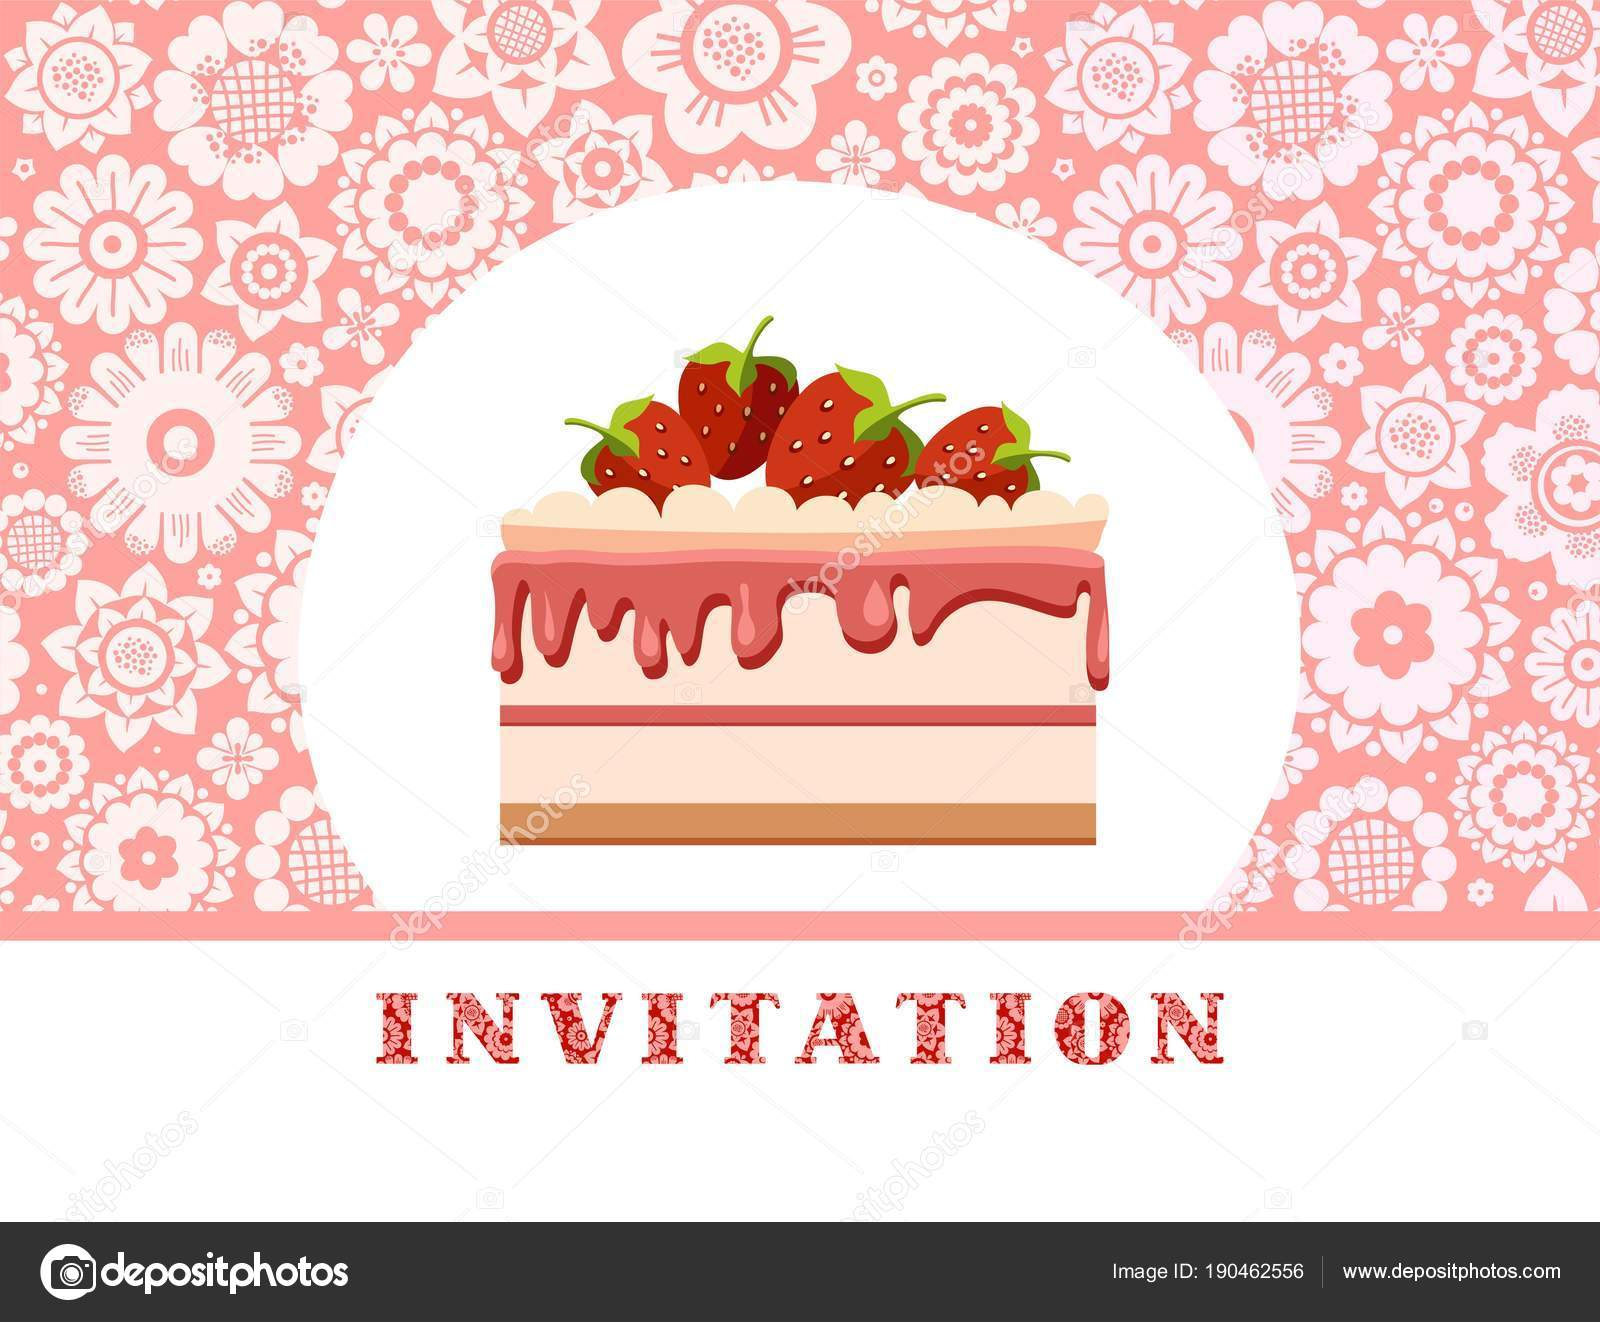 Invitation strawberry cake pink floral background vector birthday invitation strawberry cake pink floral background vector birthday invitation wedding stock vector stopboris Images